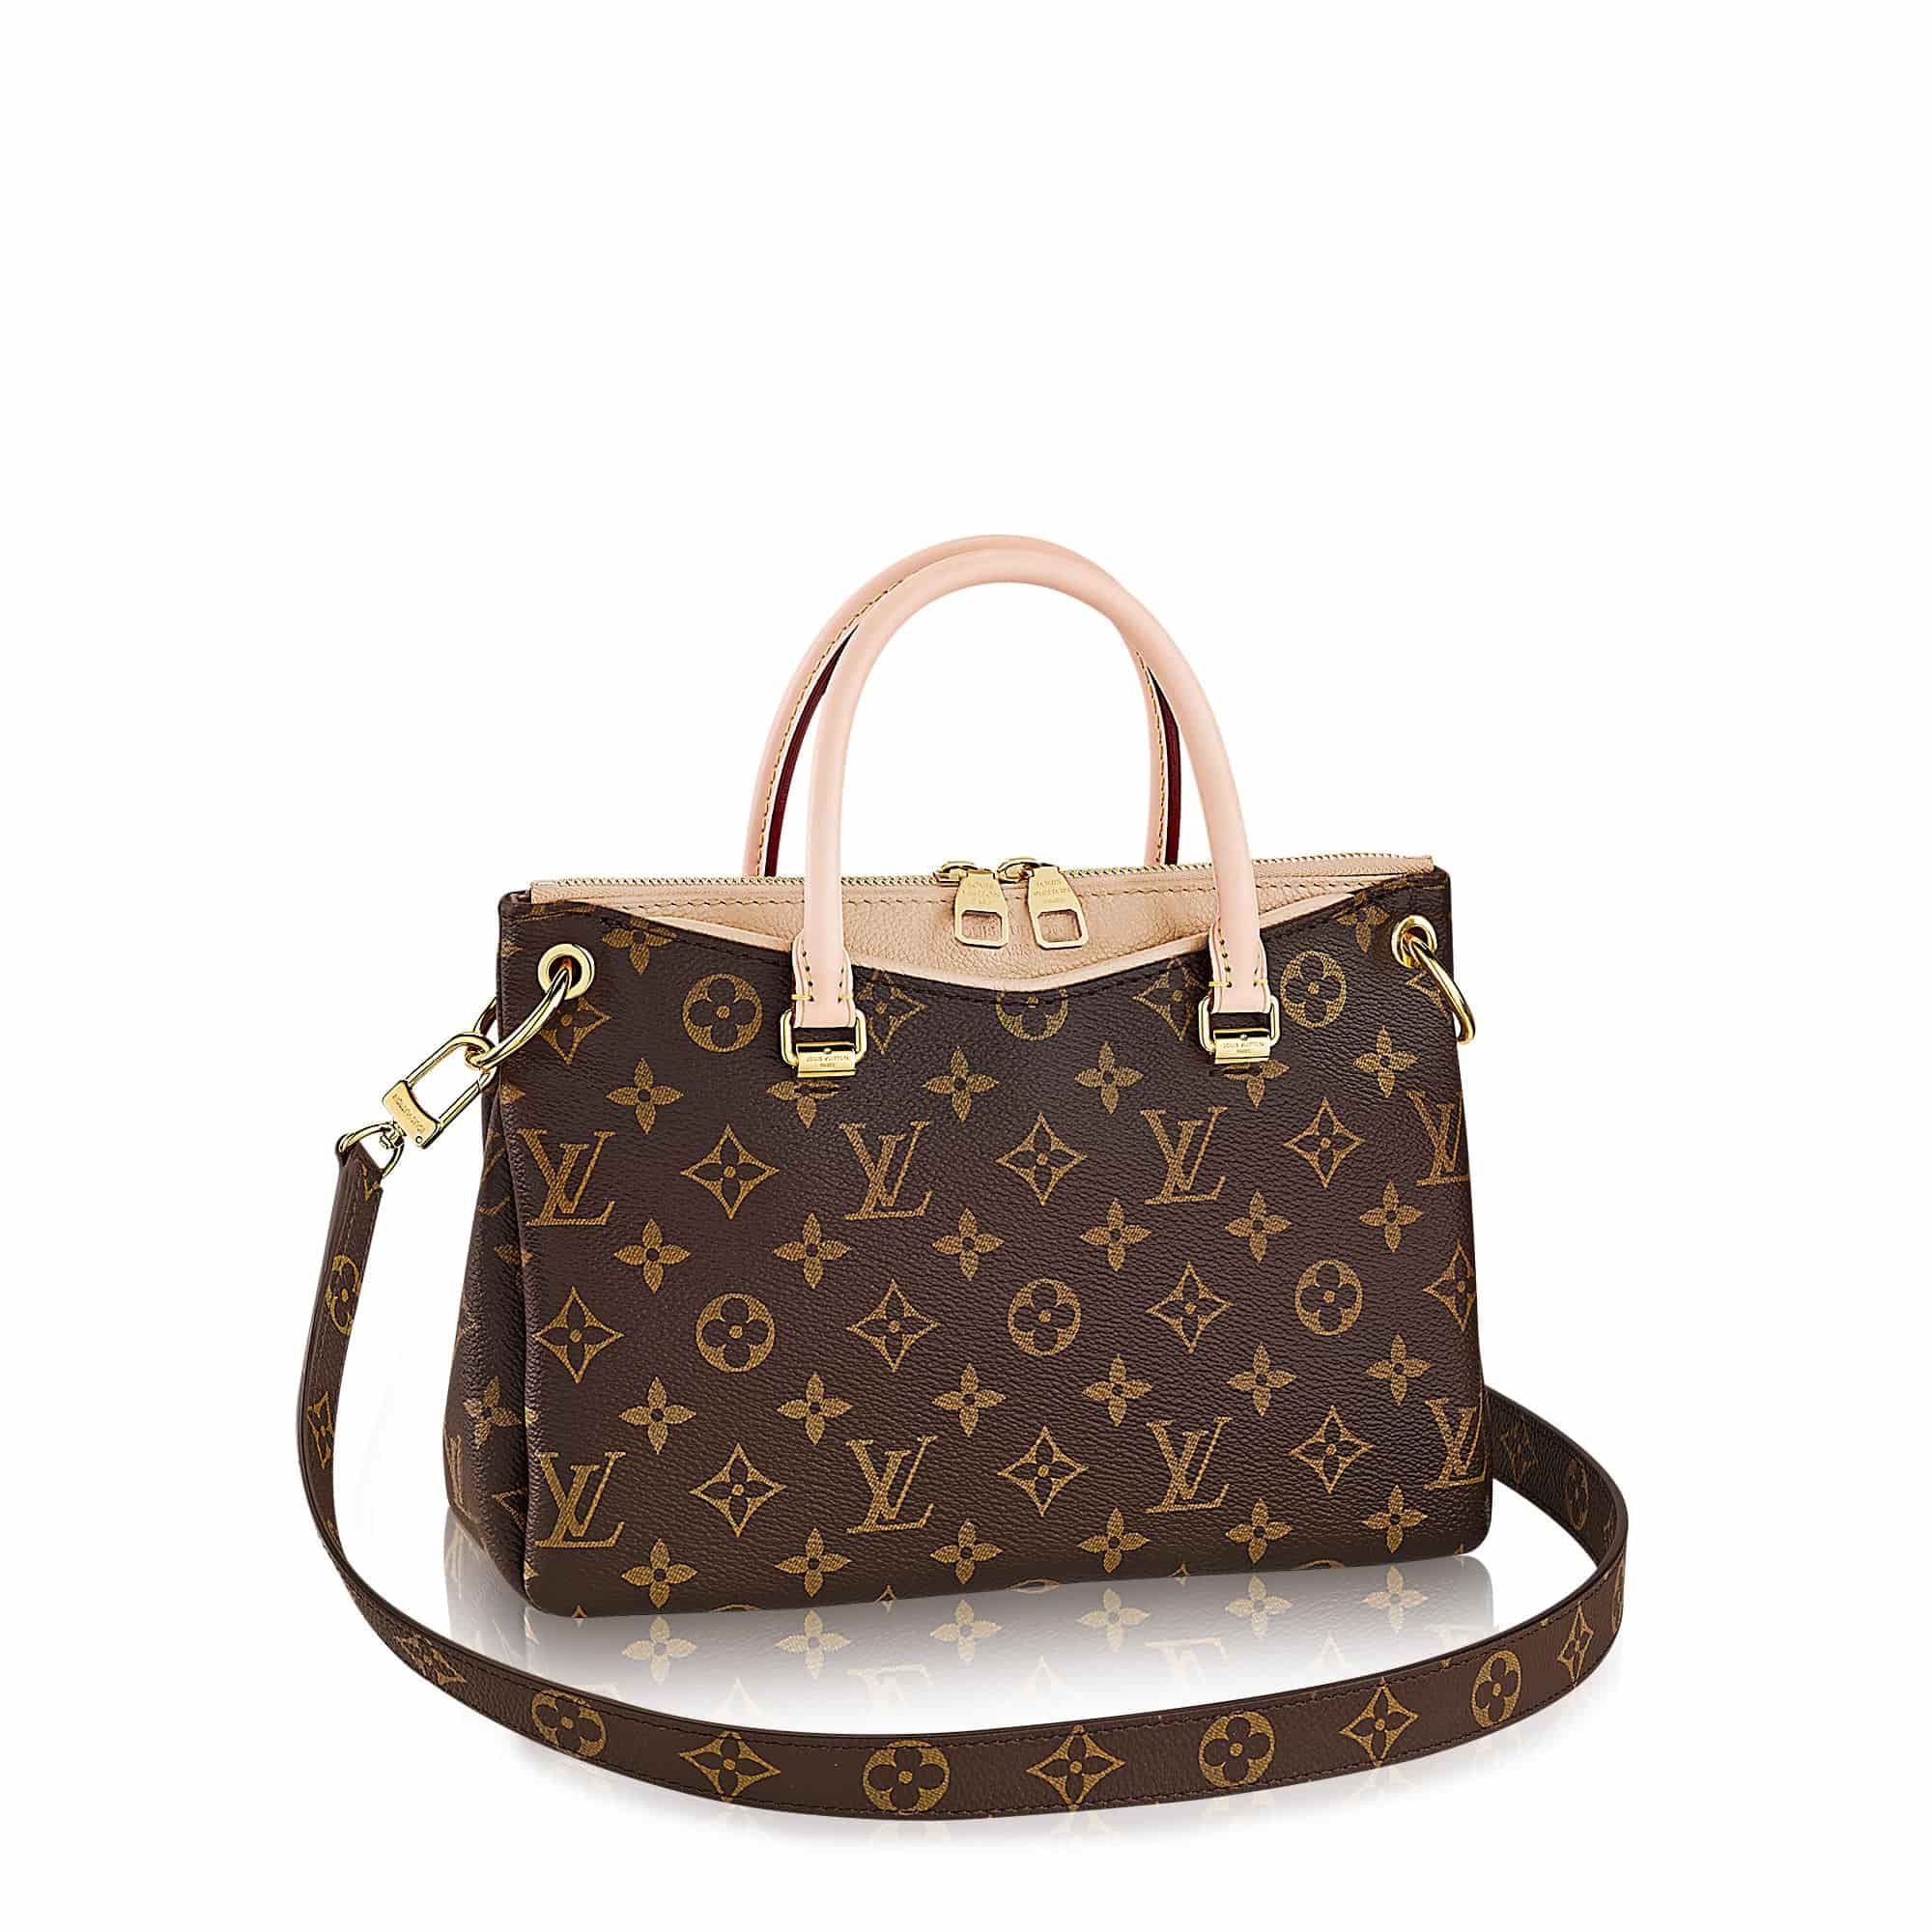 Louis Vuitton Handbags Cost In India